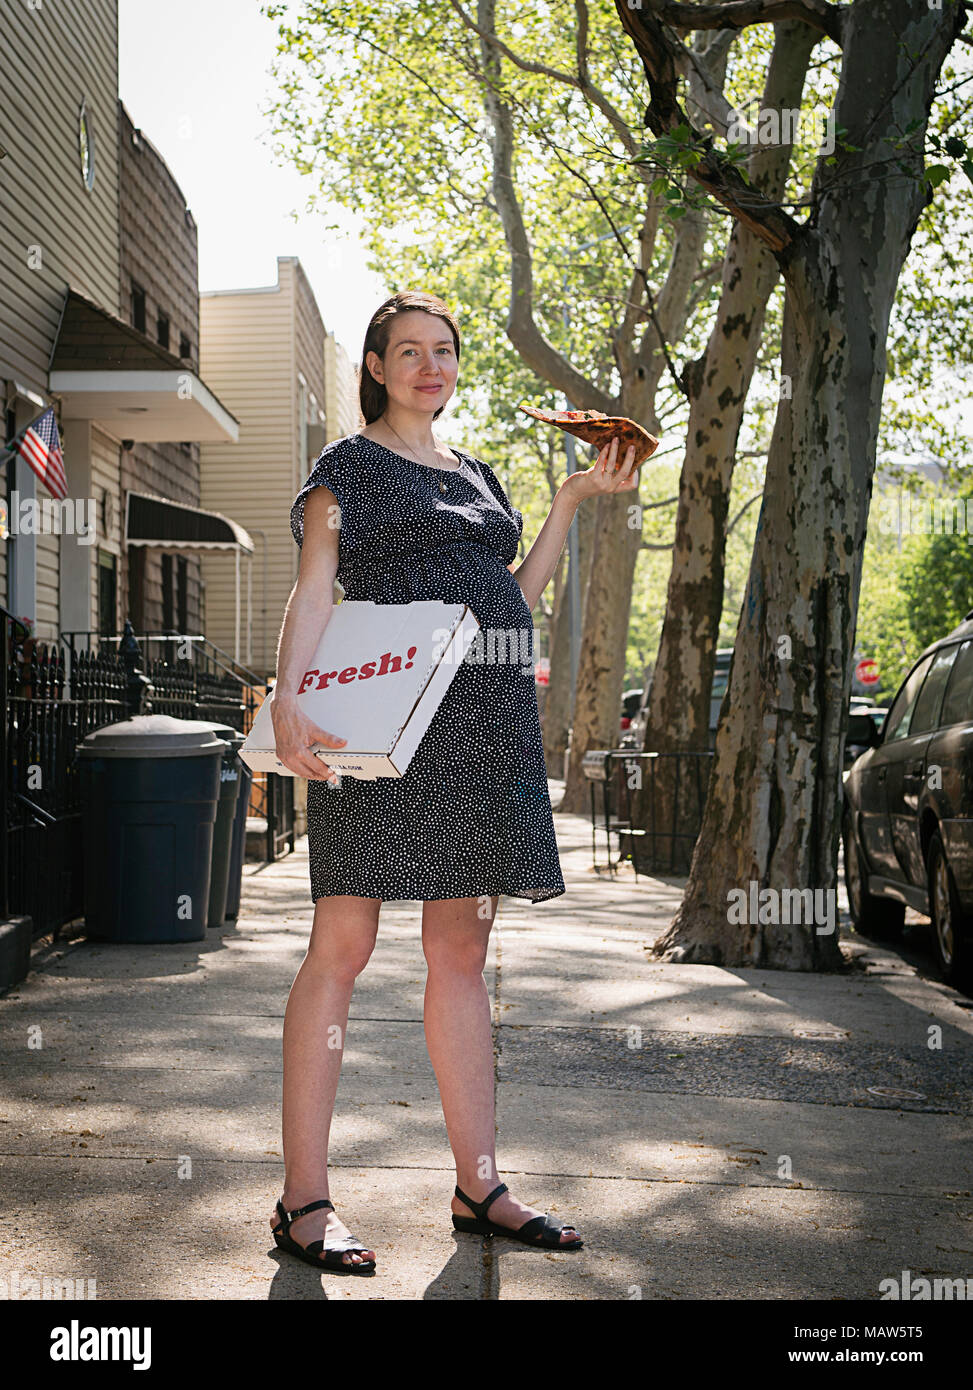 A pregnant woman standing on the street eating pizza. - Stock Image